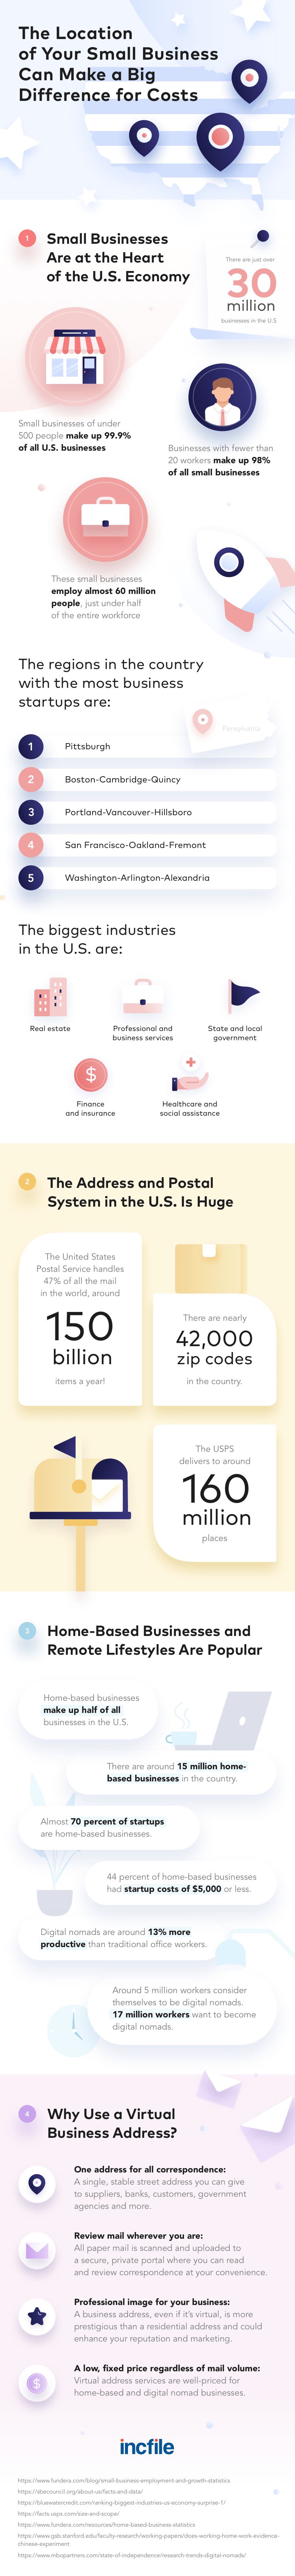 why should you use a virtual business address infographic